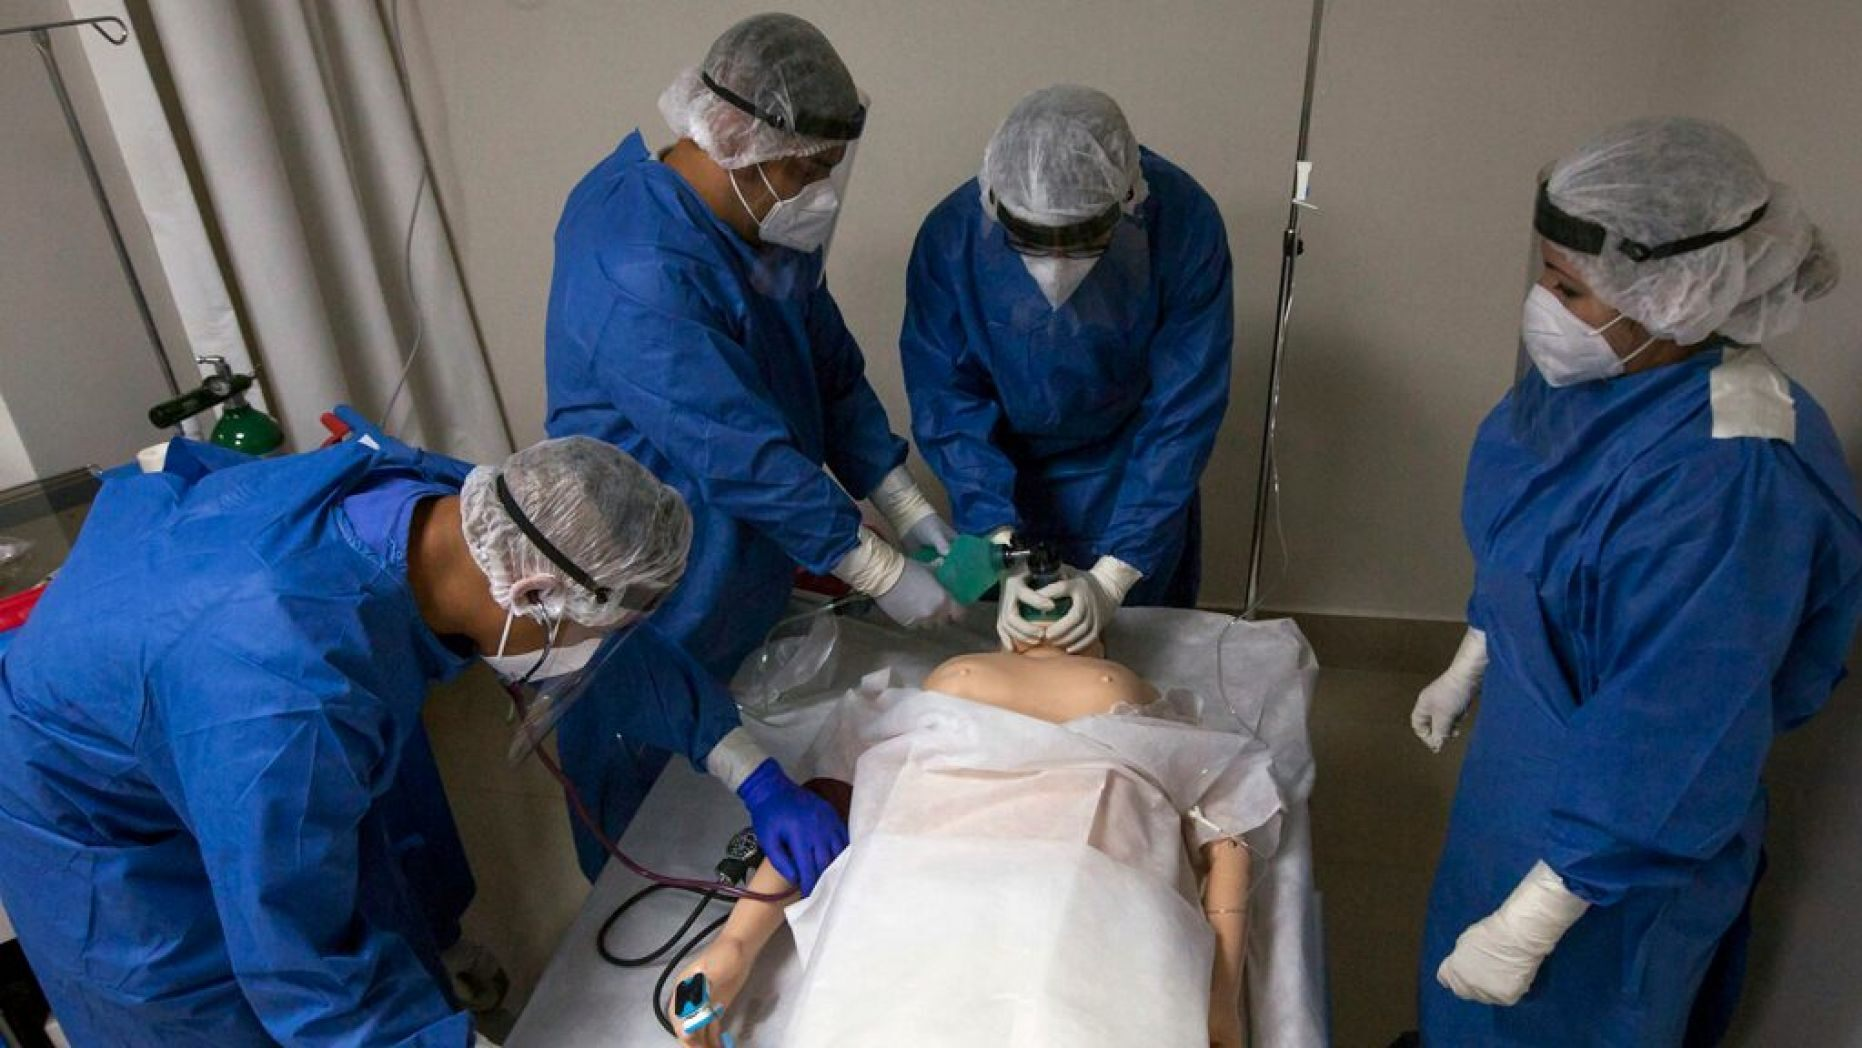 Military doctors and nurses train with a mannequin on the premises of a hospital to receive patients with Covid-19 in Monterrey, Nuevo Leon, Mexico, on May 18, 2020.